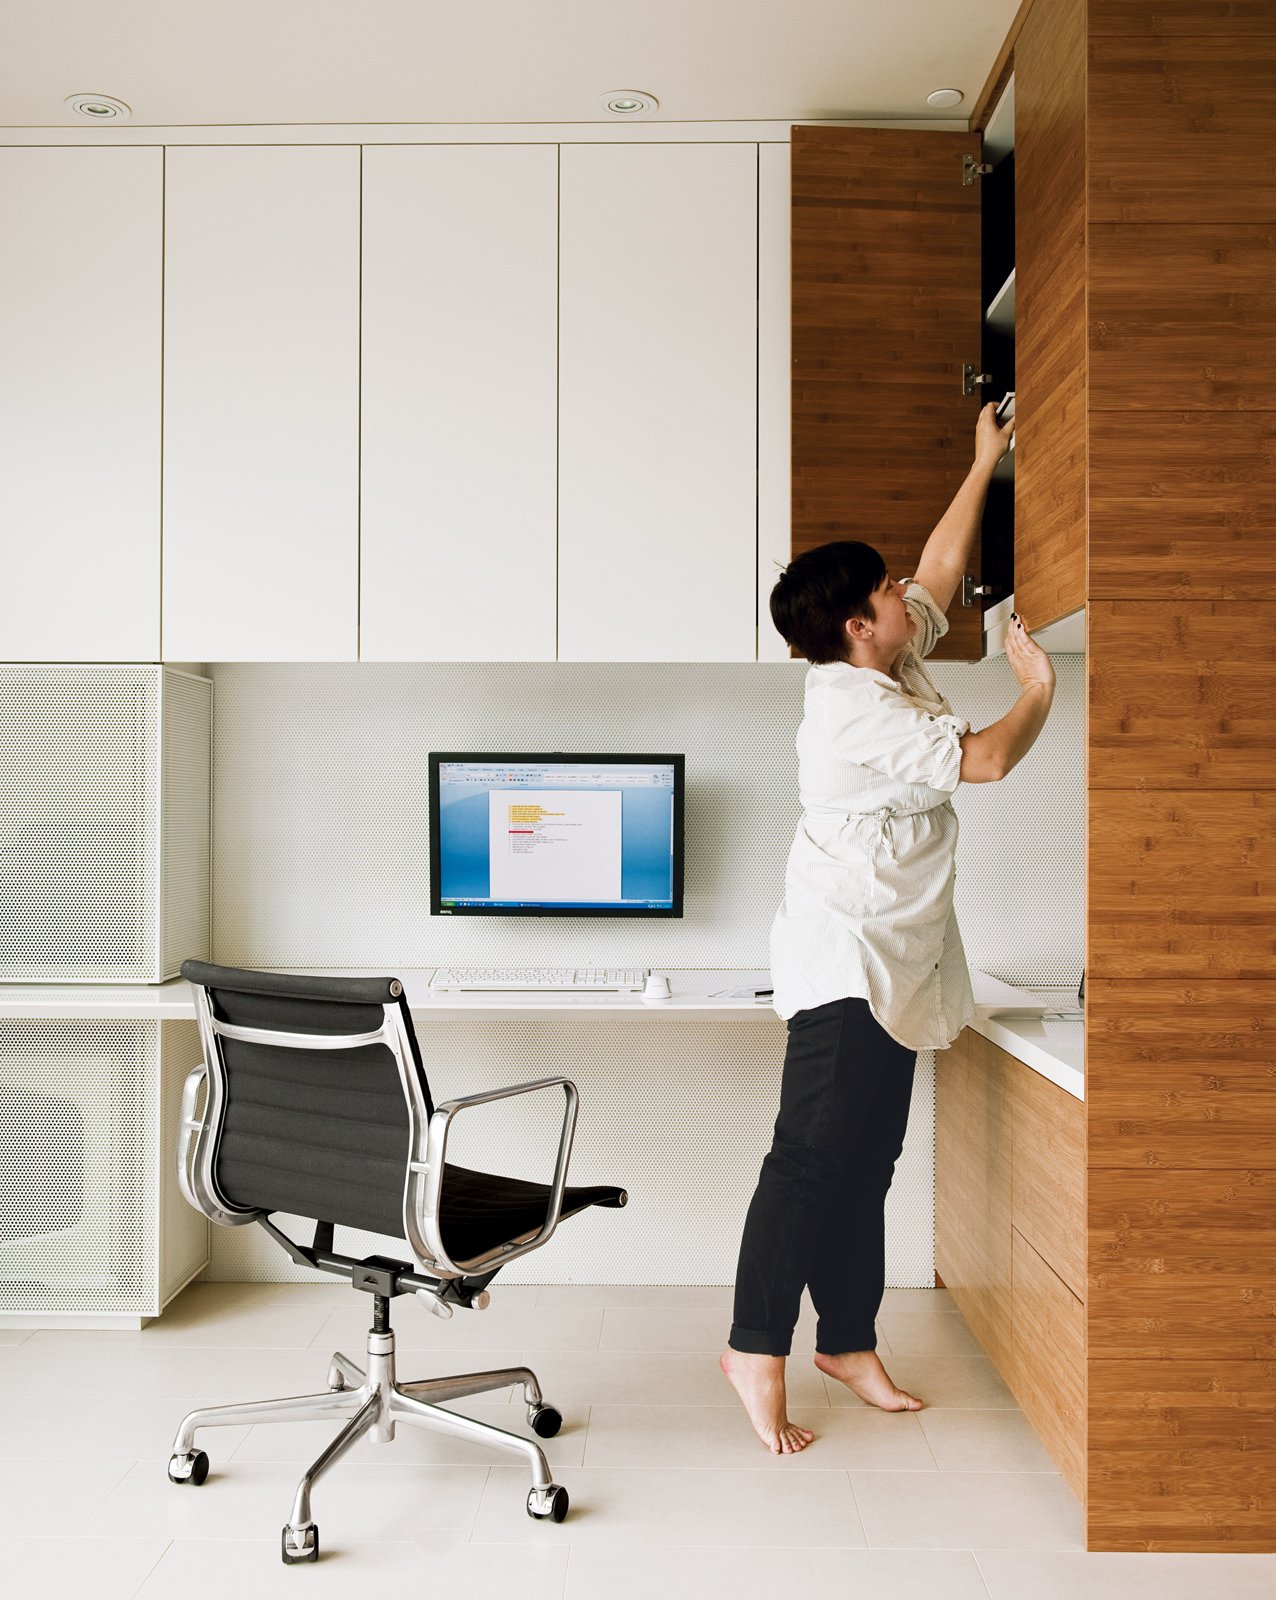 An Eames Aluminum Group chair for Herman Miller and bamboo shelving system are featured in the office Camille Owens and architect husband Francisco created within their living-dining space.